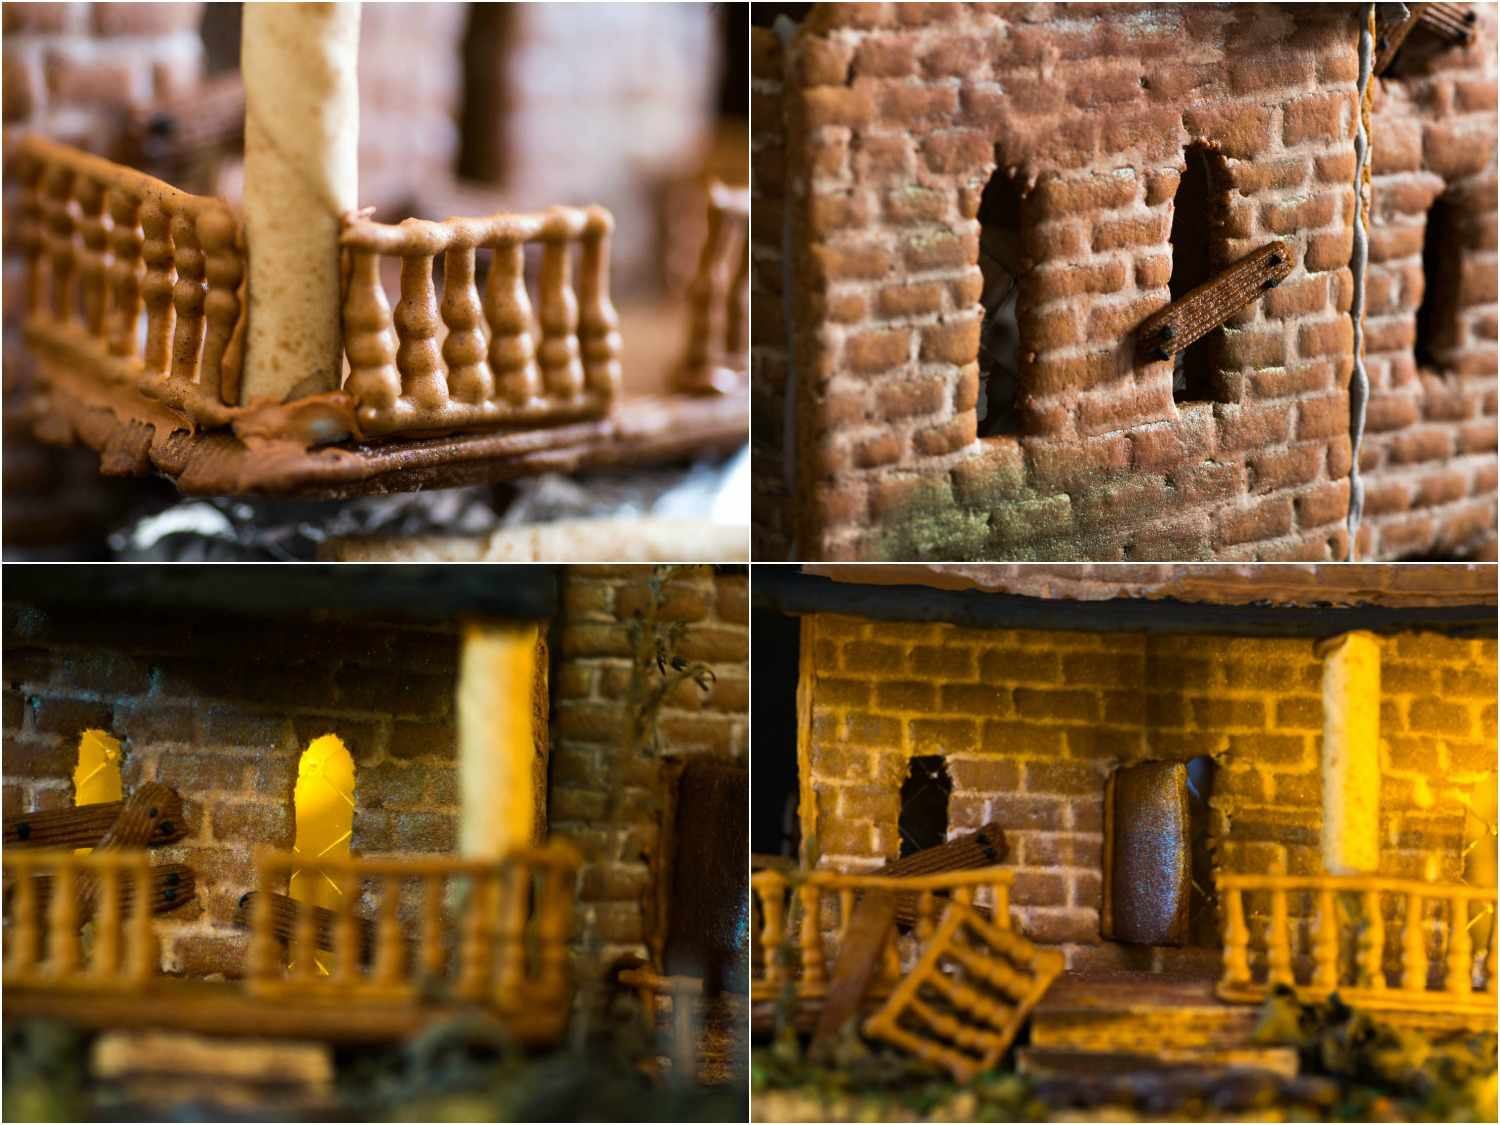 Collage of photos of dilapidated details of gingerbread house: piped gingerbread-paste railings along the porch, boarded-up window